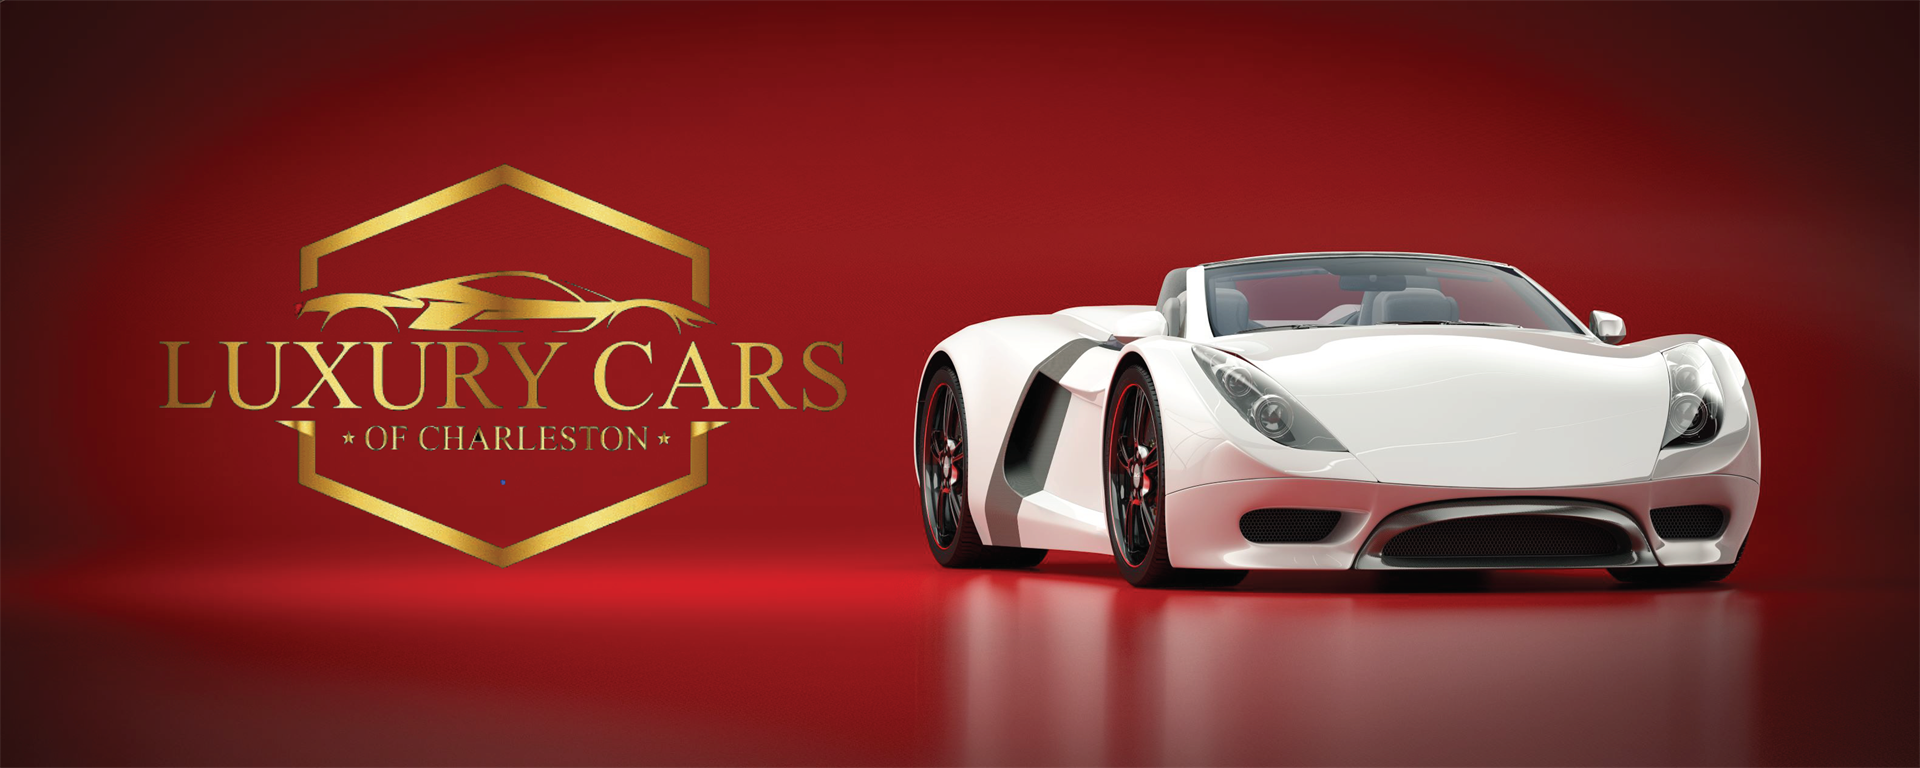 Luxury Cars of Charleston